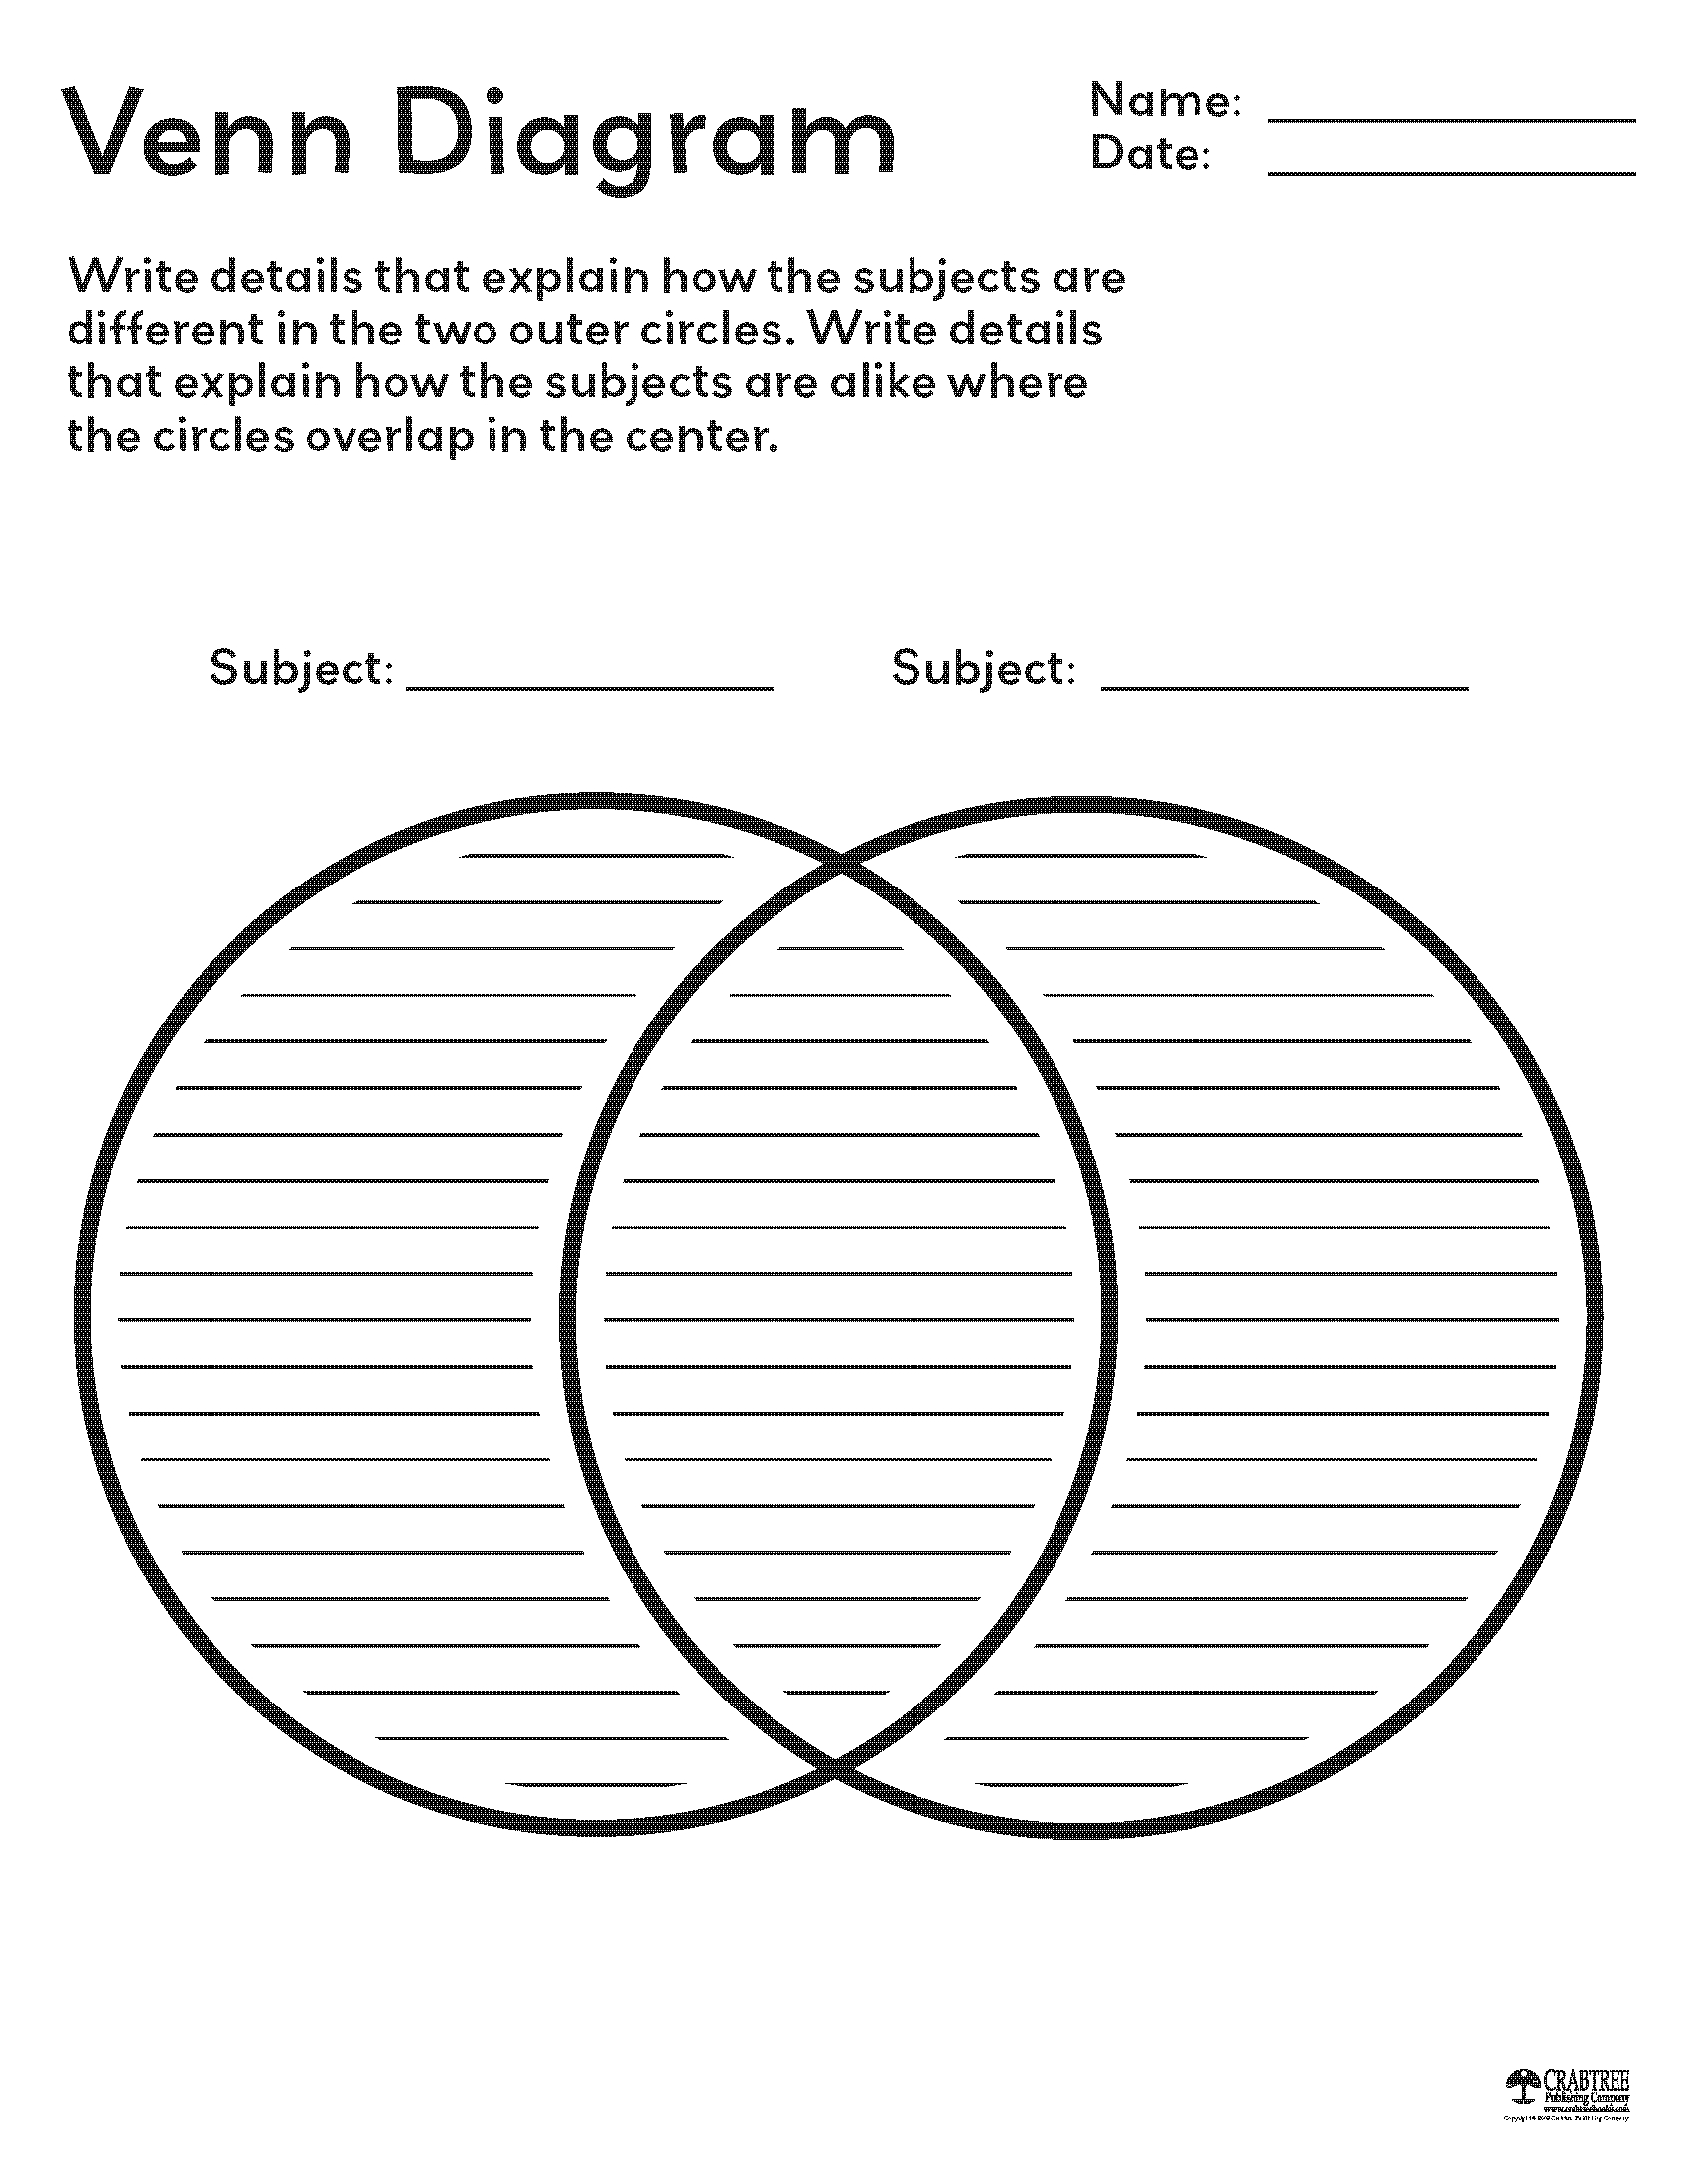 Free Printable Graphic Organizers From Crabtree Publishing | 3Rd - Free Printable Graphic Organizers